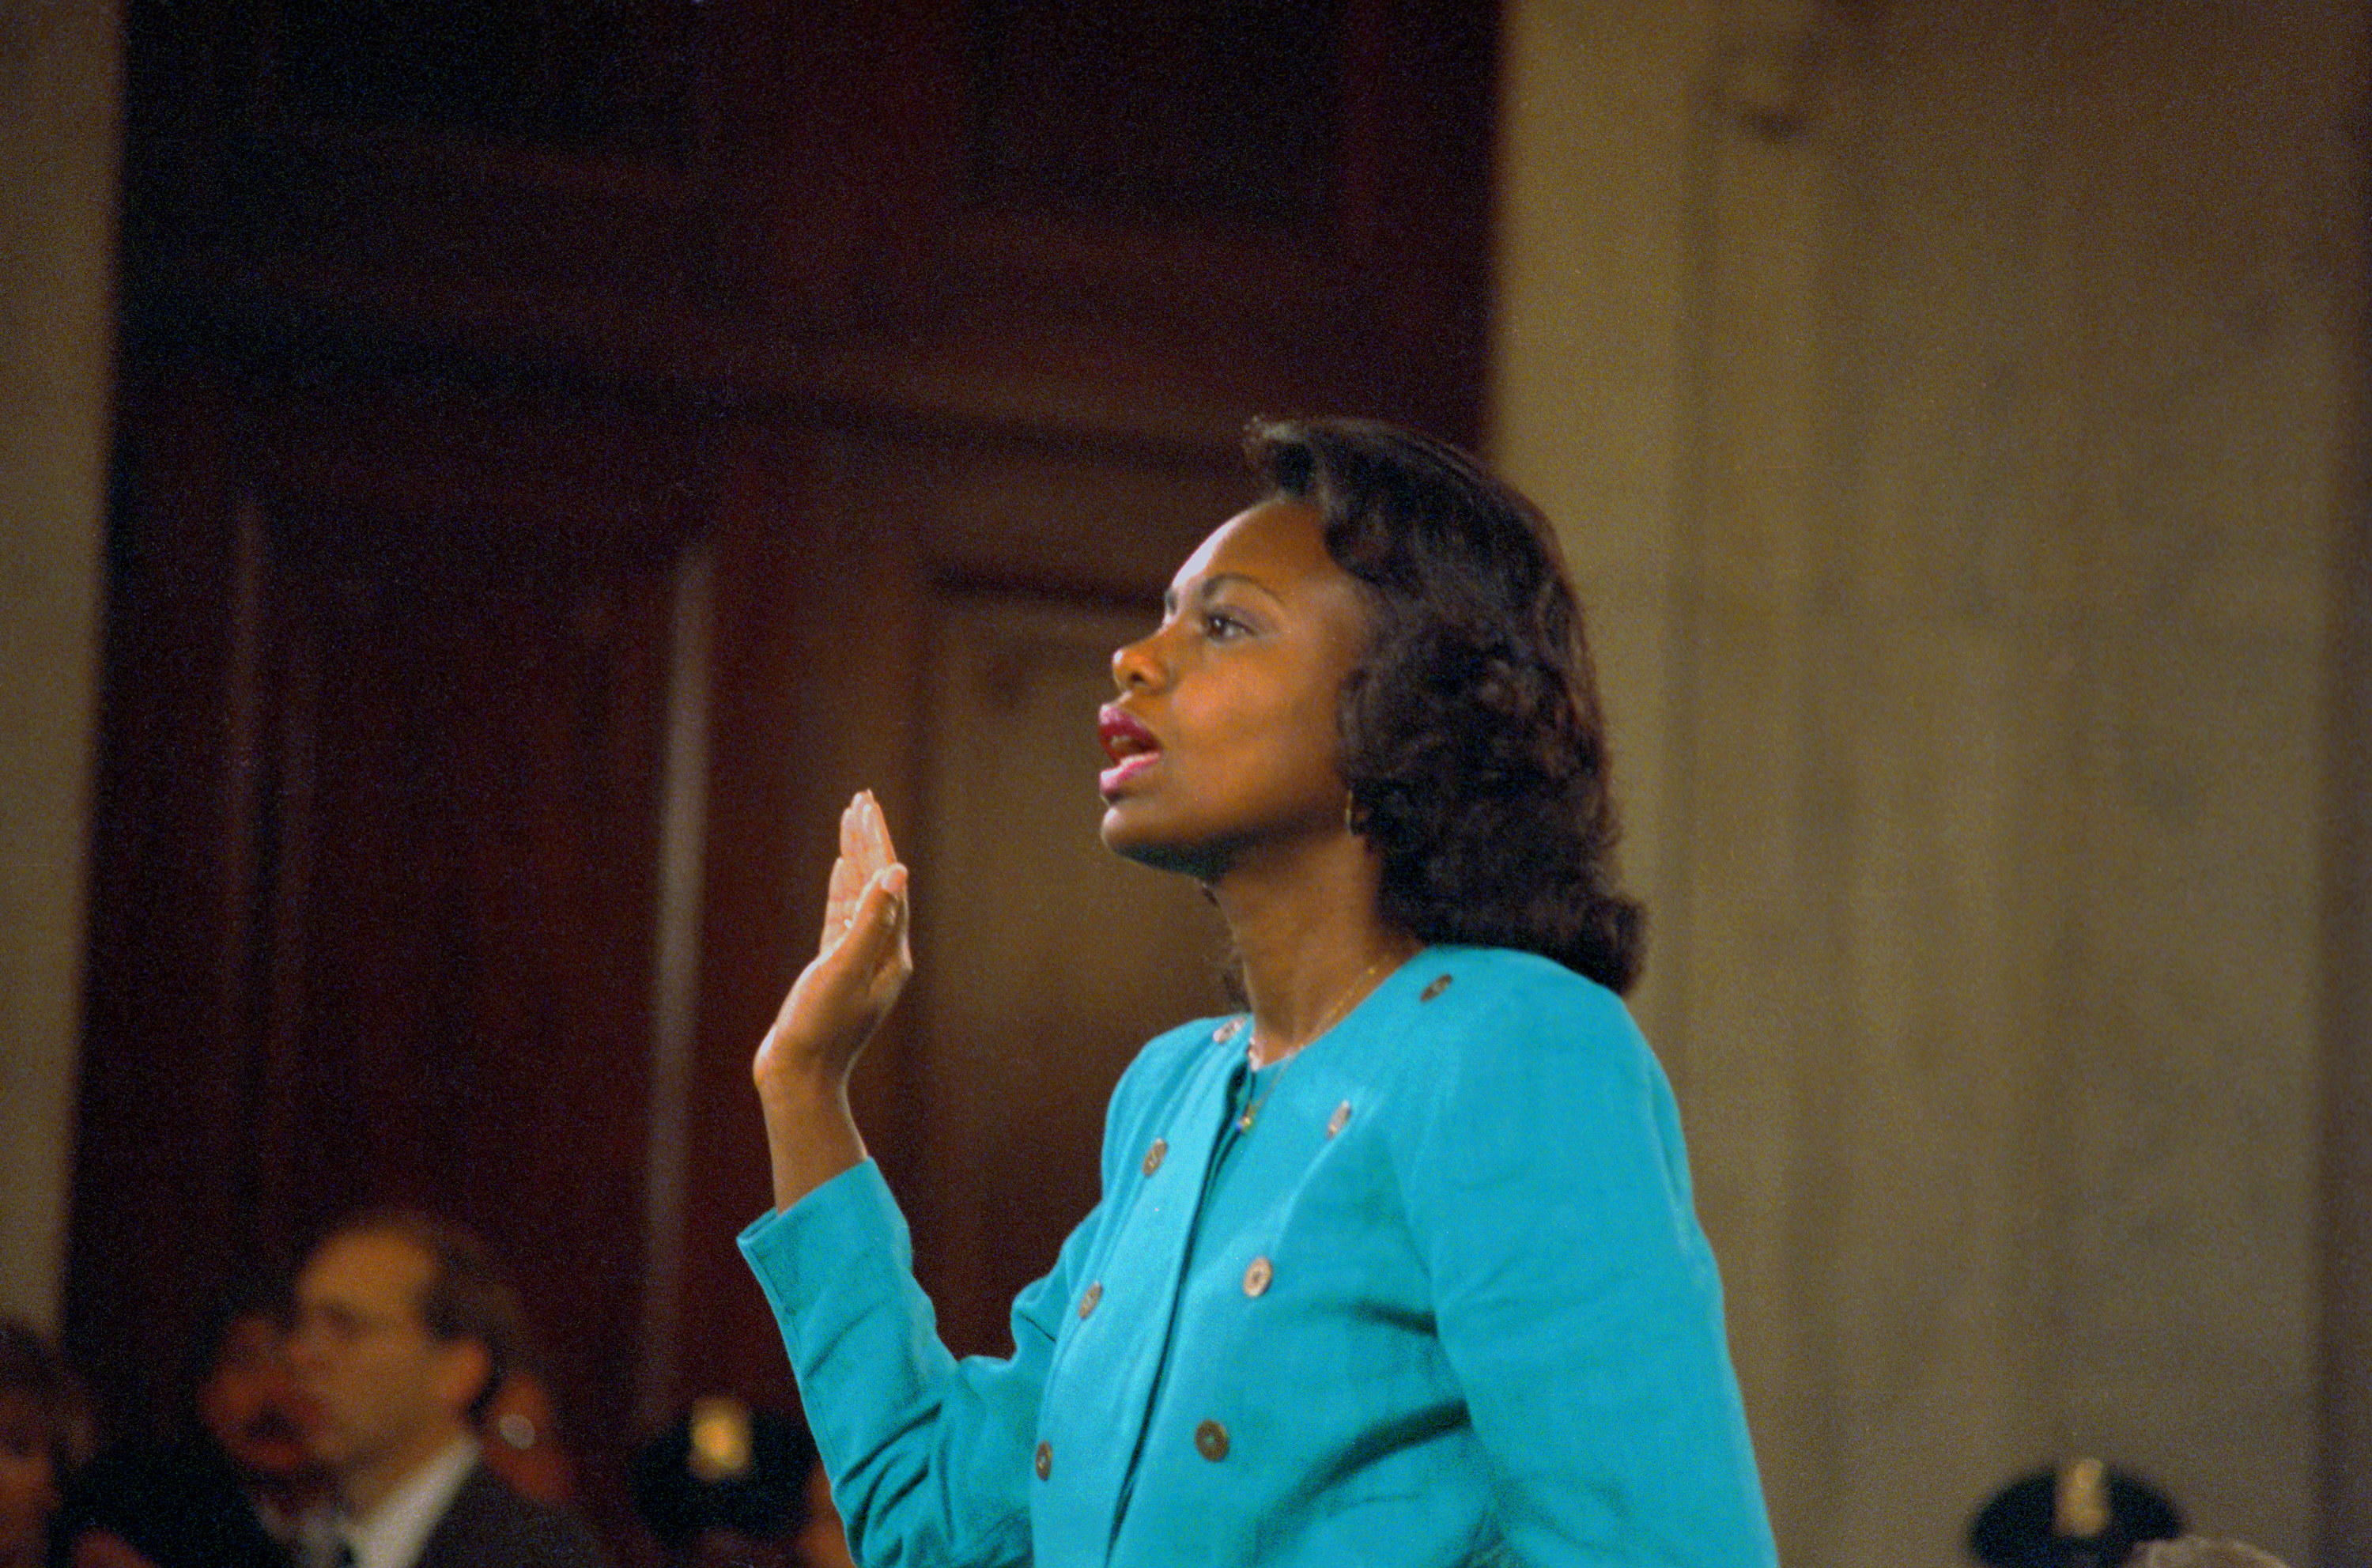 Professor Hill being sworn in before her testimony